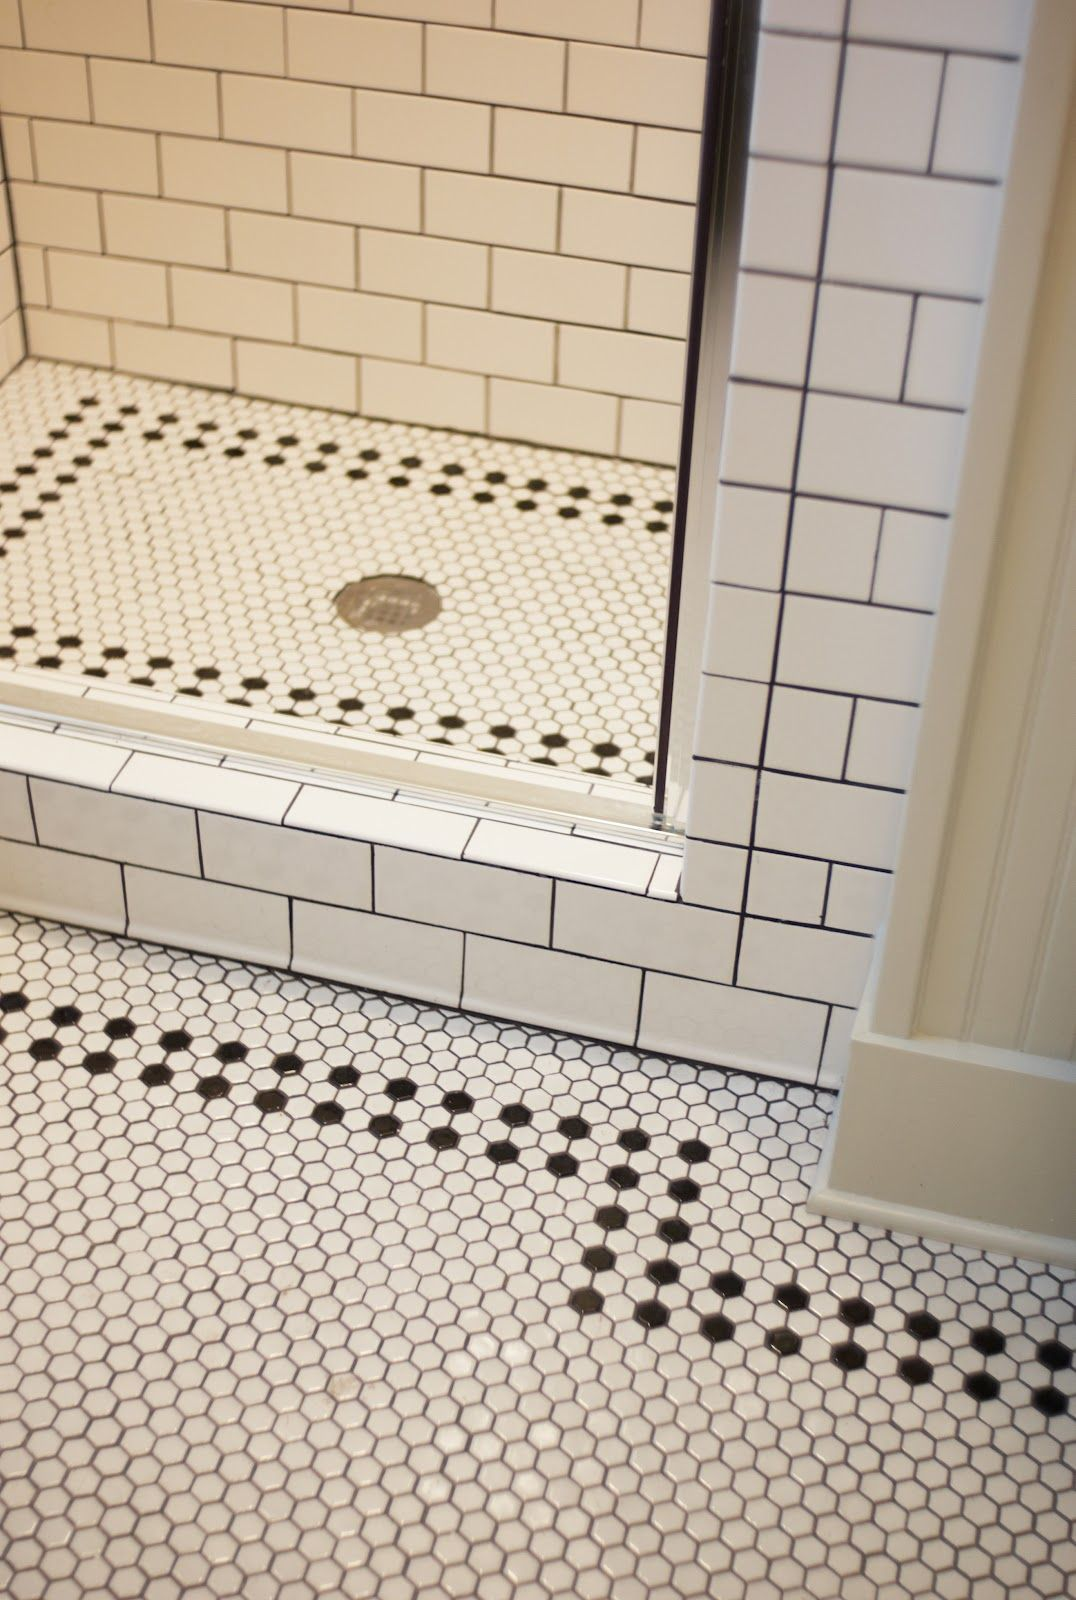 First Time Homebuyers Fixing Up An Old House With A Little Diy And A Lot Of Love In Wichita Vintage Bathroom Tile Patterned Bathroom Tiles White Bathroom Tiles